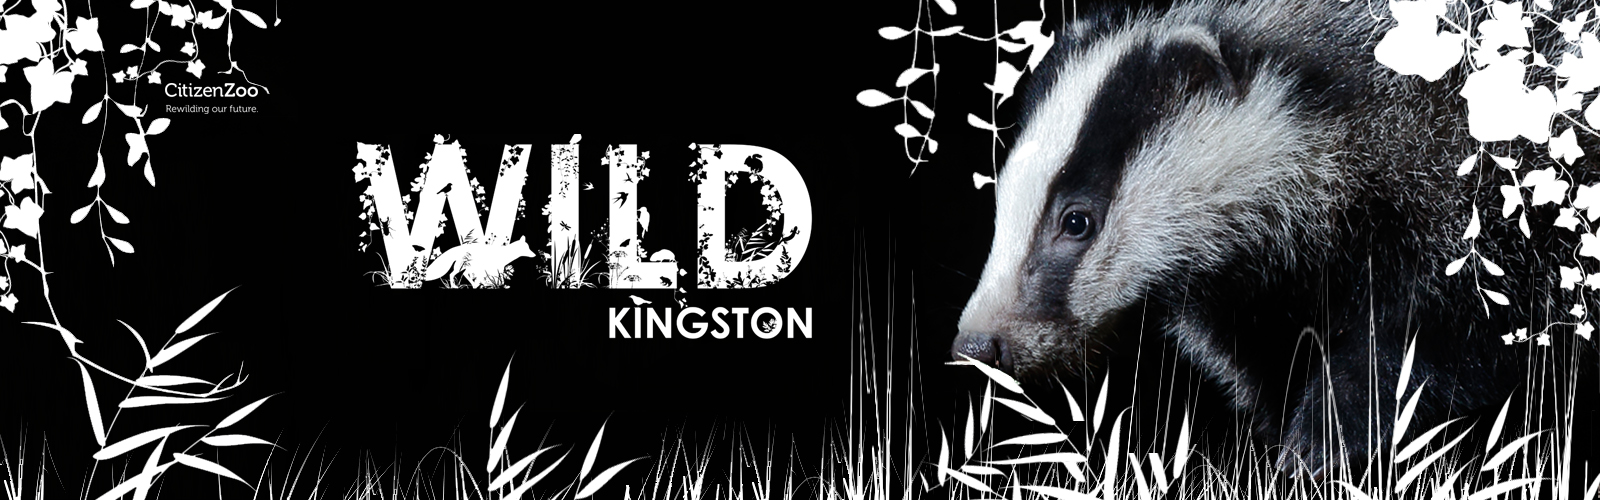 Event WILDKingston